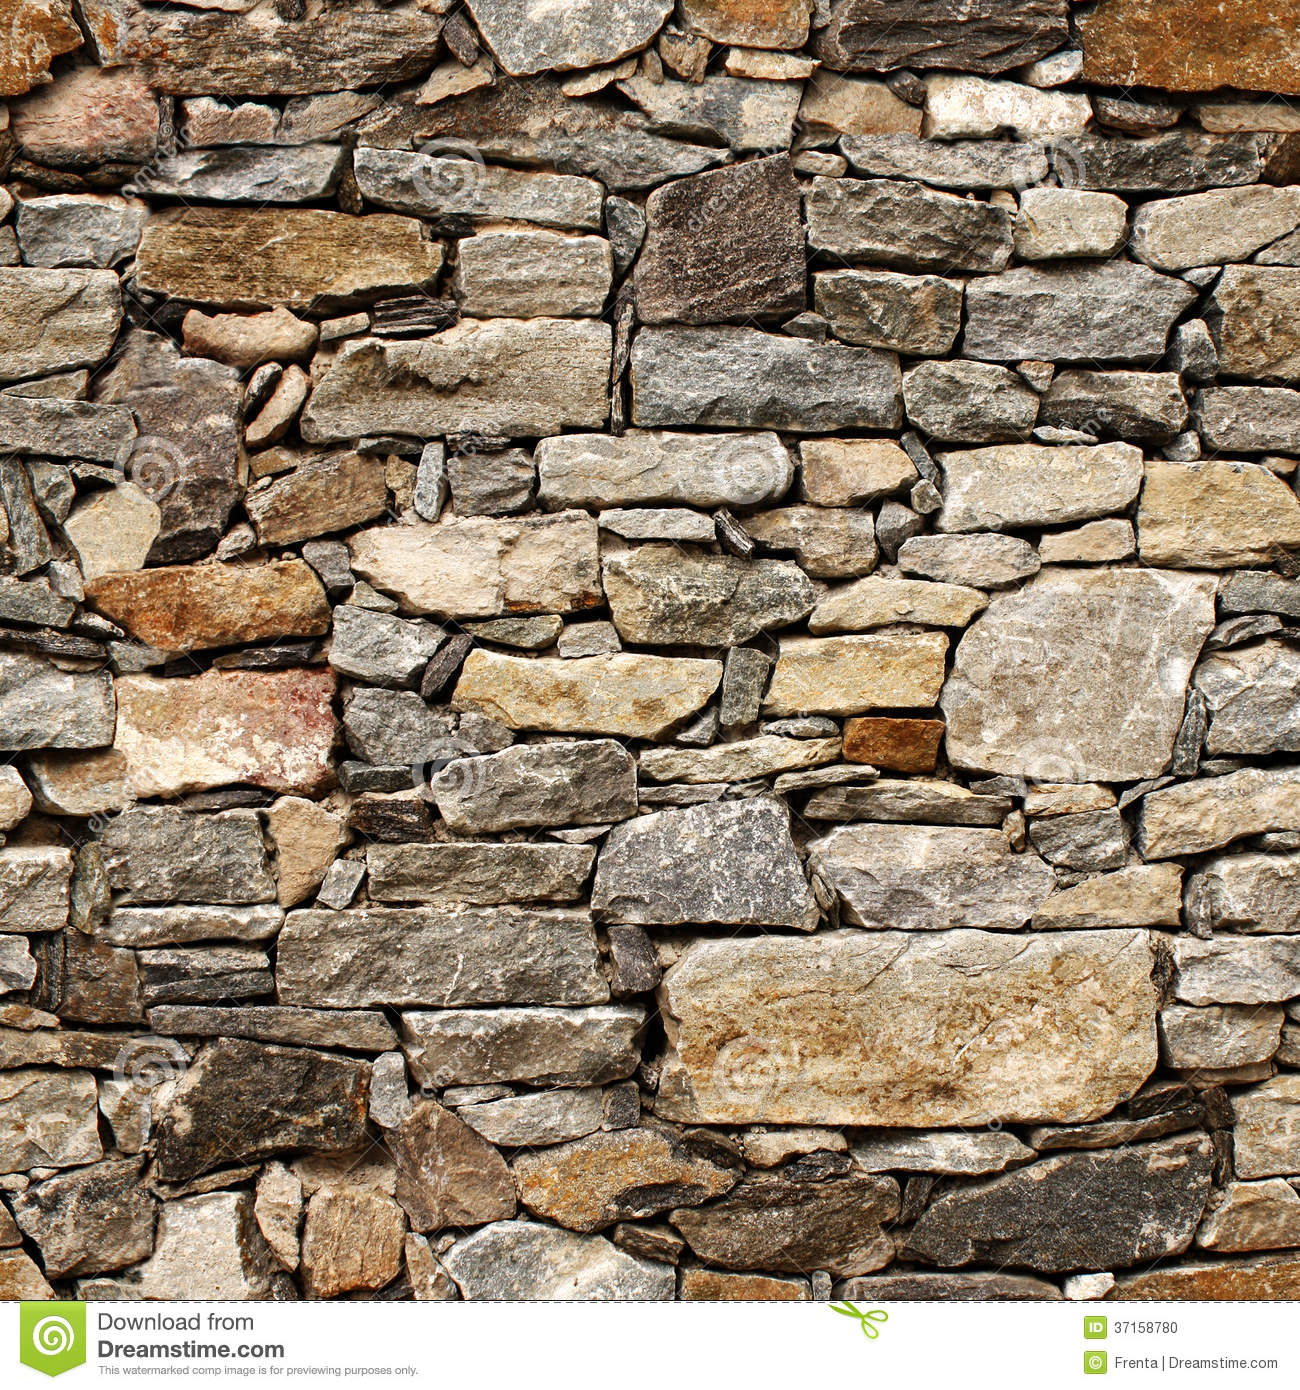 Seamless texture of medieval wall of stone blocks. Seamless Texture Of Medieval Wall Of Stone Blocks Stock Photo